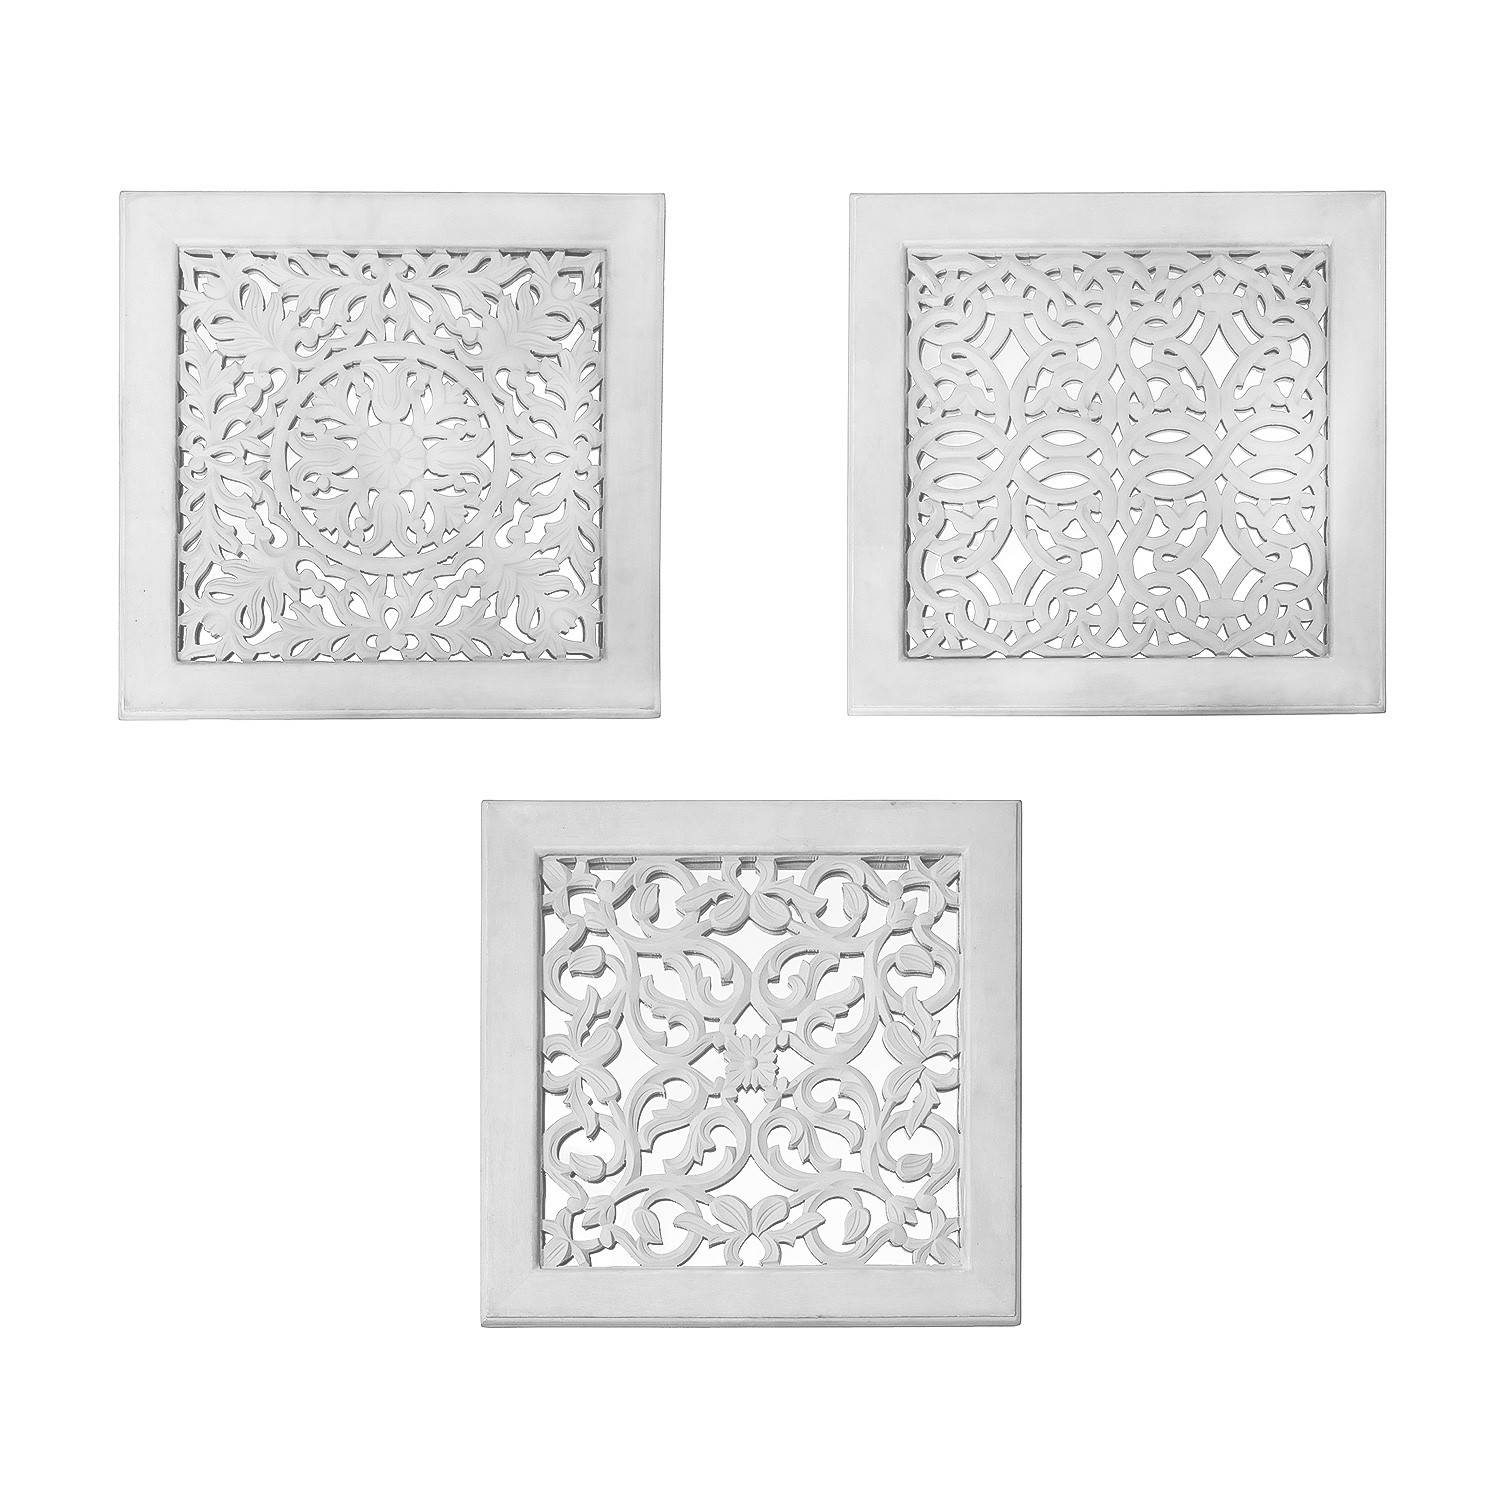 Fretwork Wall Art: White (set Of 3) | The Yellow Door Store With Regard To 2017 Fretwork Wall Art (View 6 of 25)